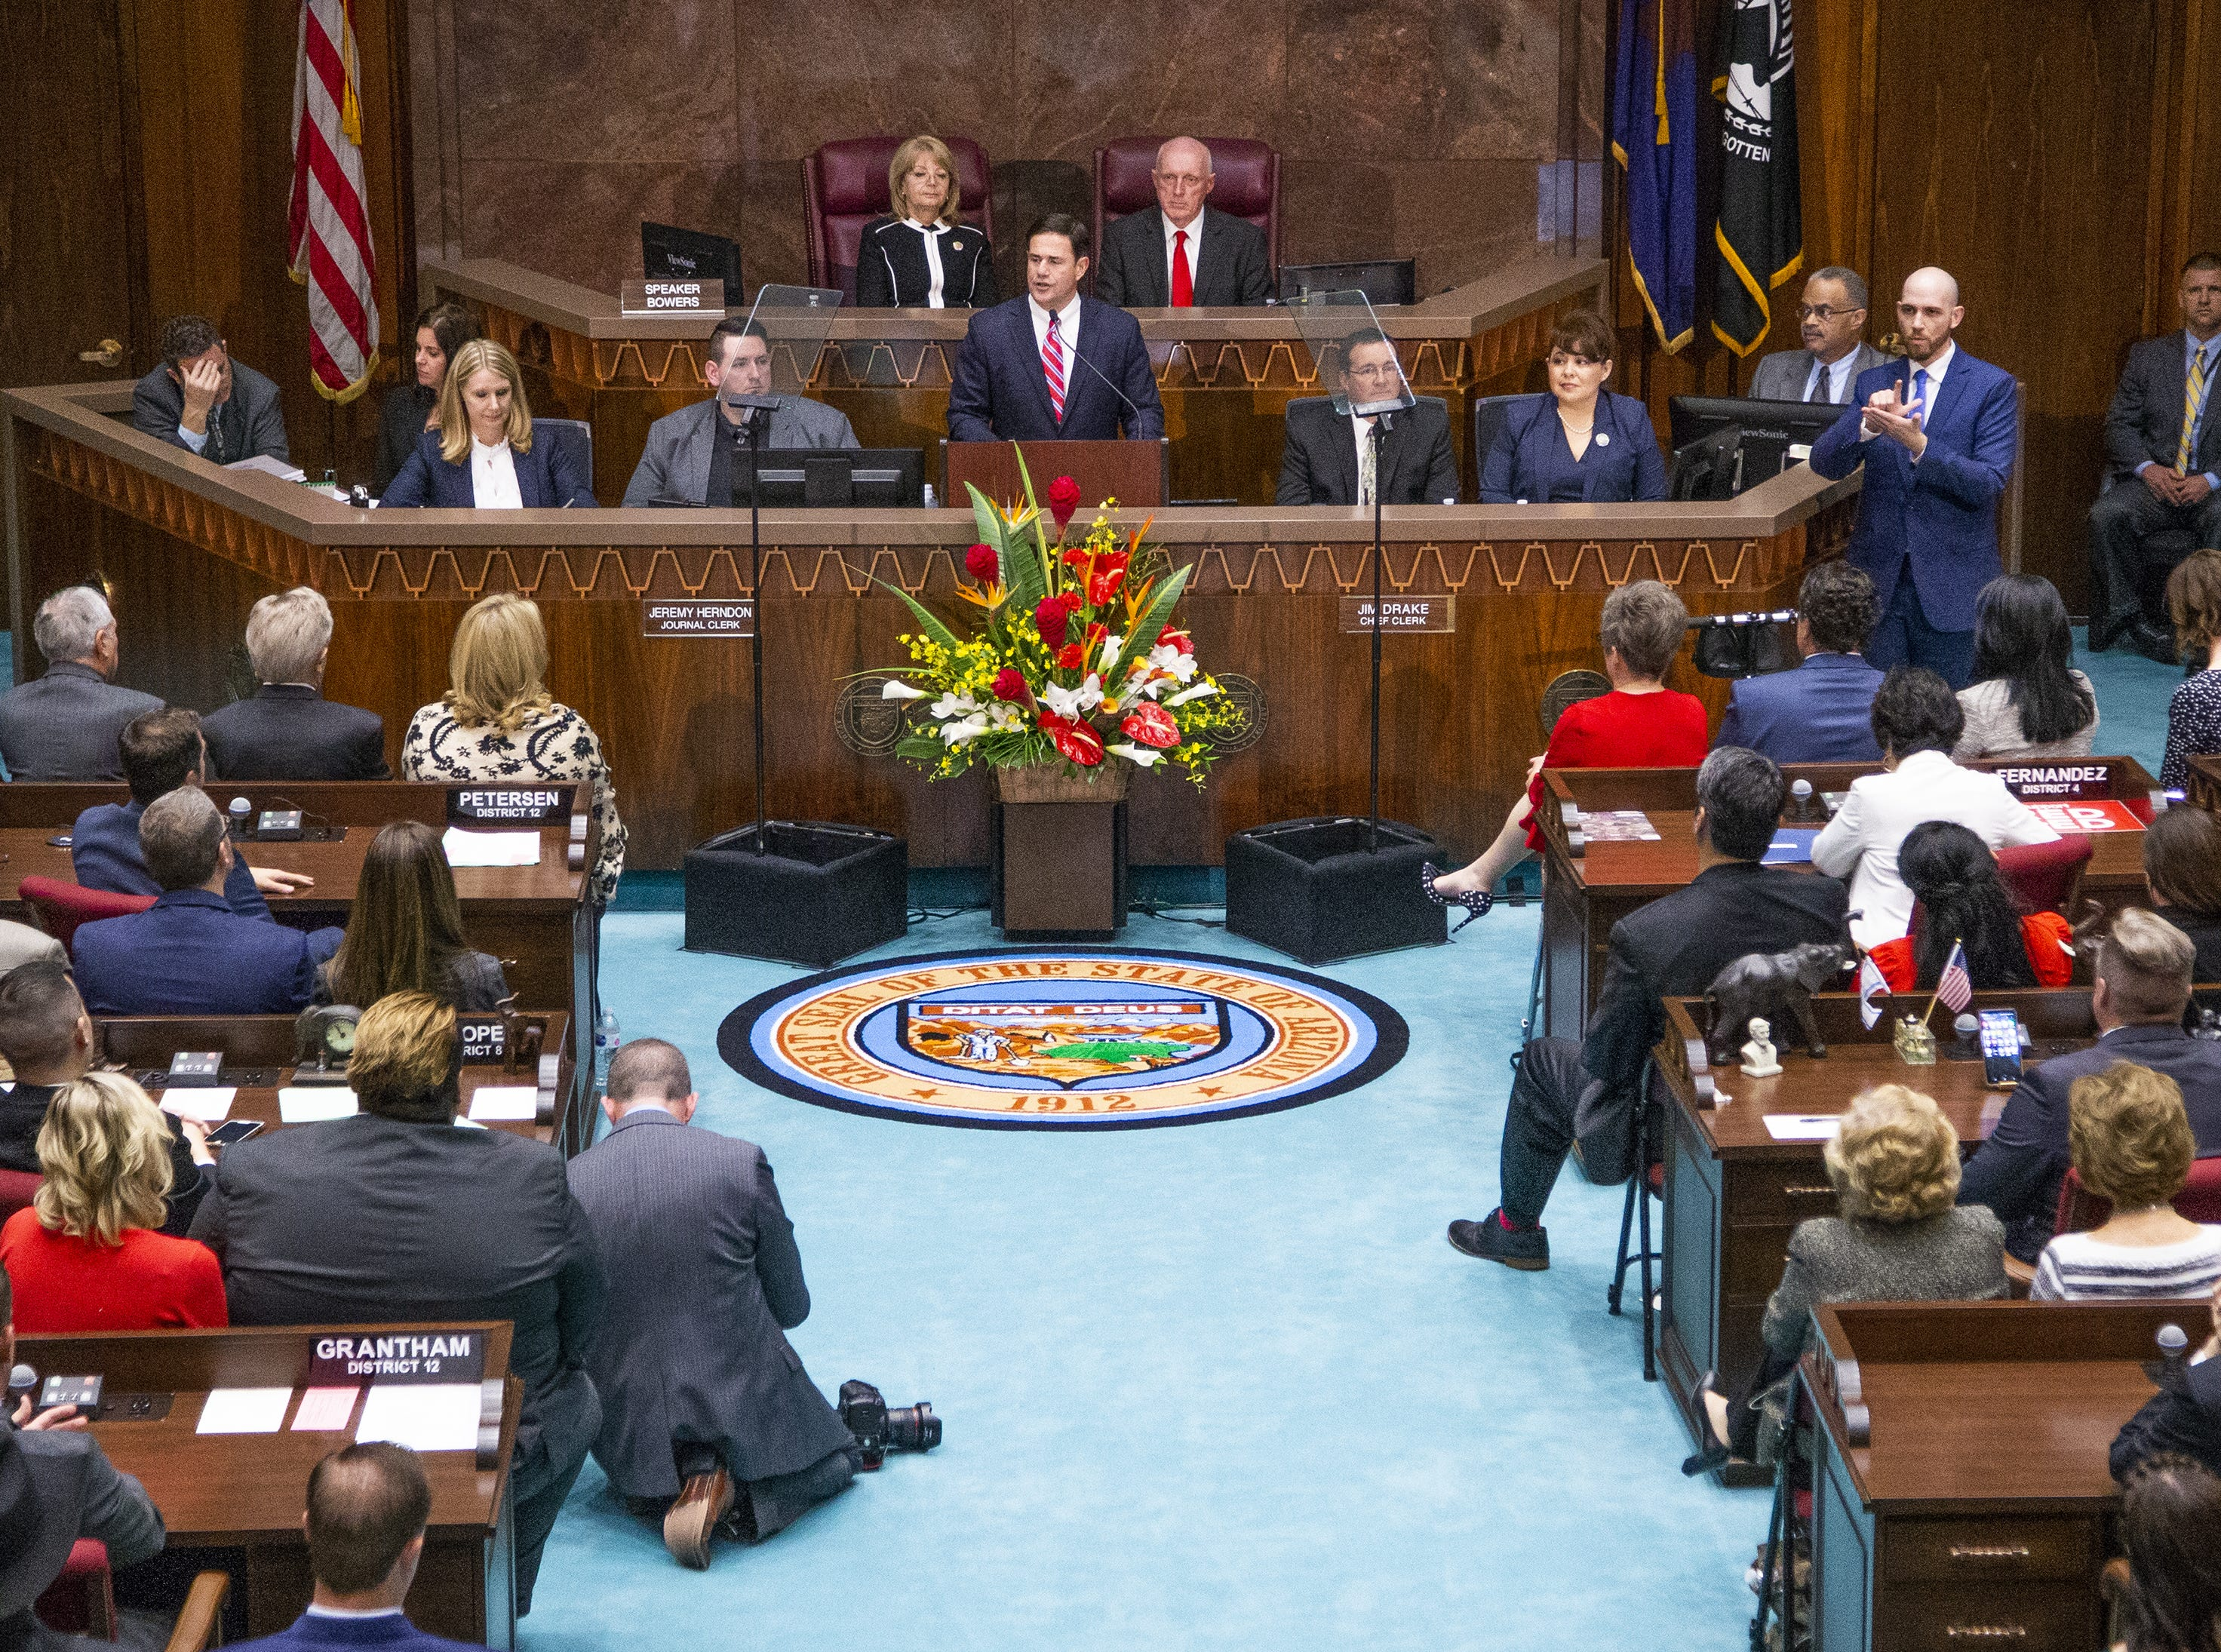 Gov. Doug Ducey delivers his State of the State address to the Legislature and guests gathered in the House of Representatives at the State Capitol on Jan. 14, 2019.